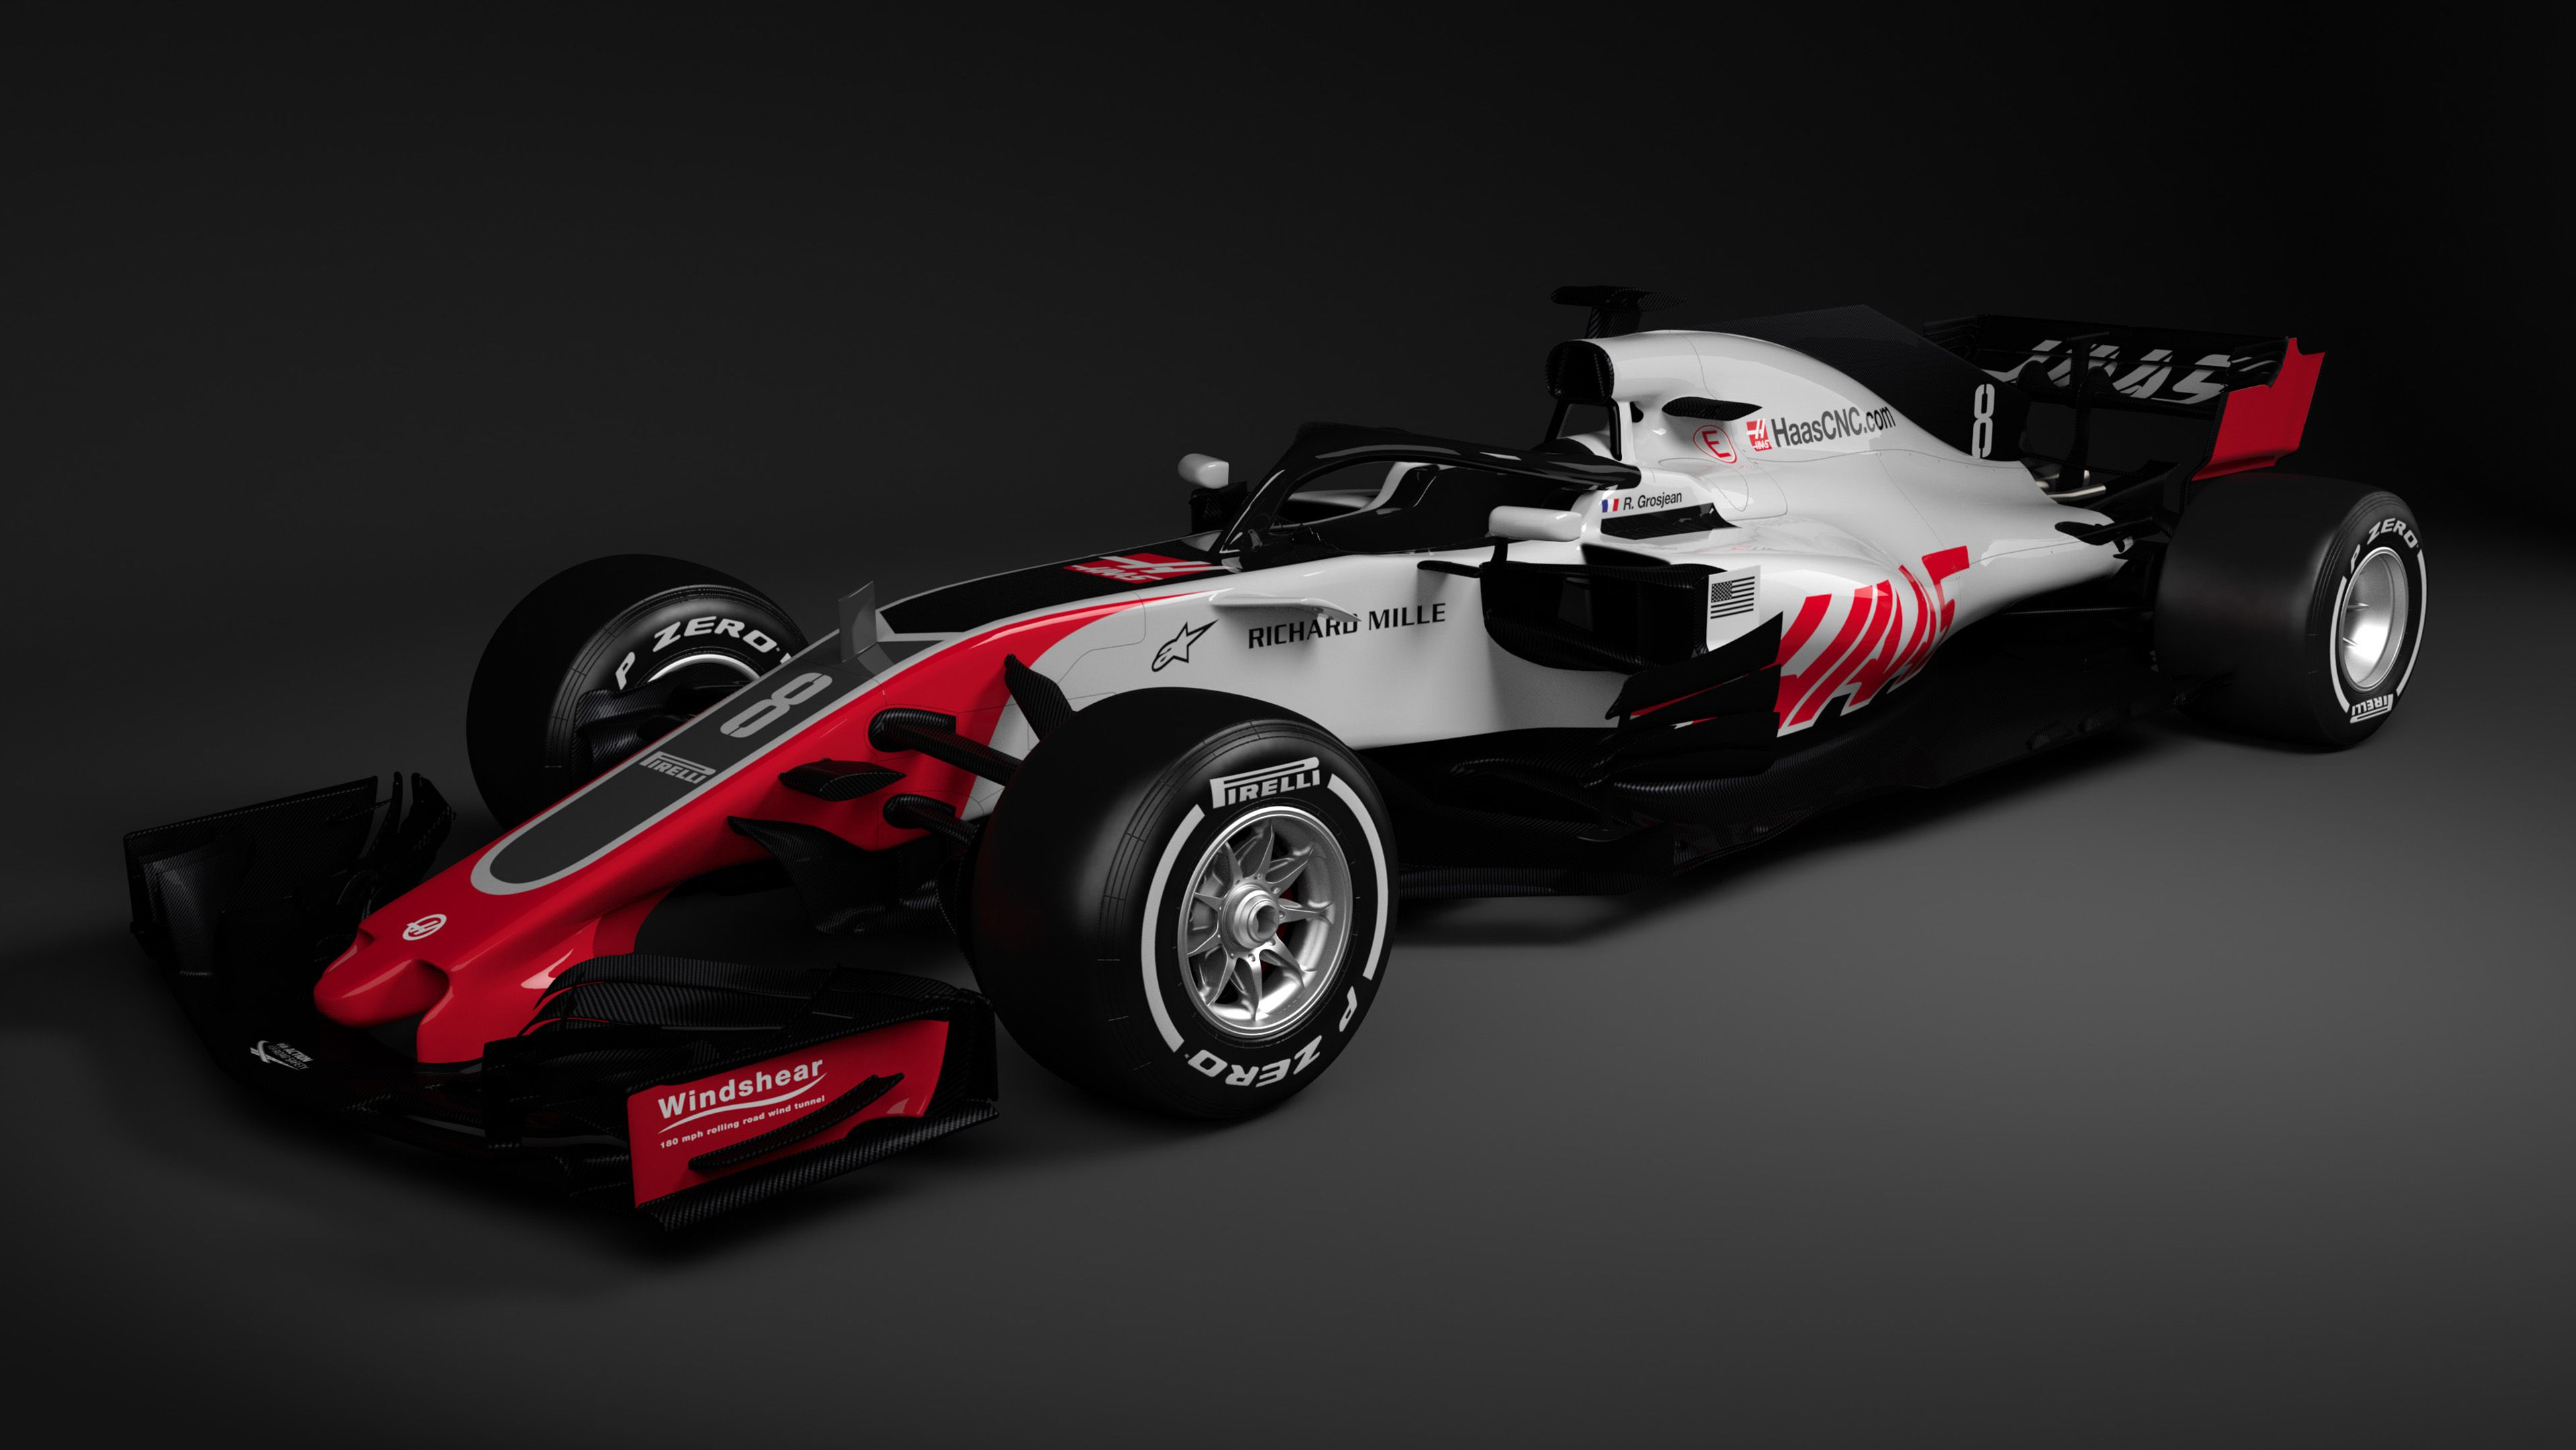 haas f1 team unveils racecar for 2018. Black Bedroom Furniture Sets. Home Design Ideas